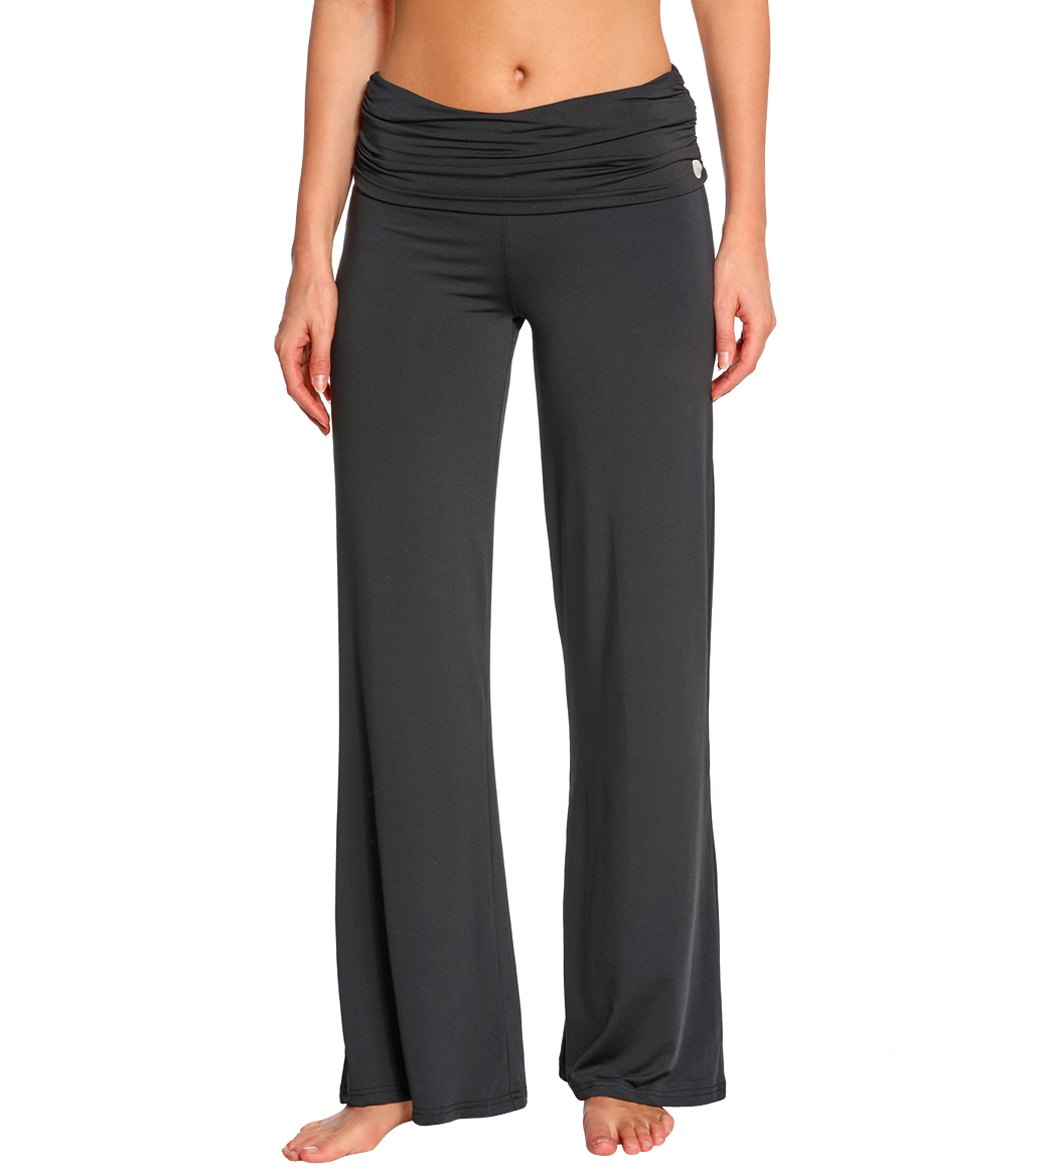 Women's Wide Leg Yoga Pants at YogaOutlet.com